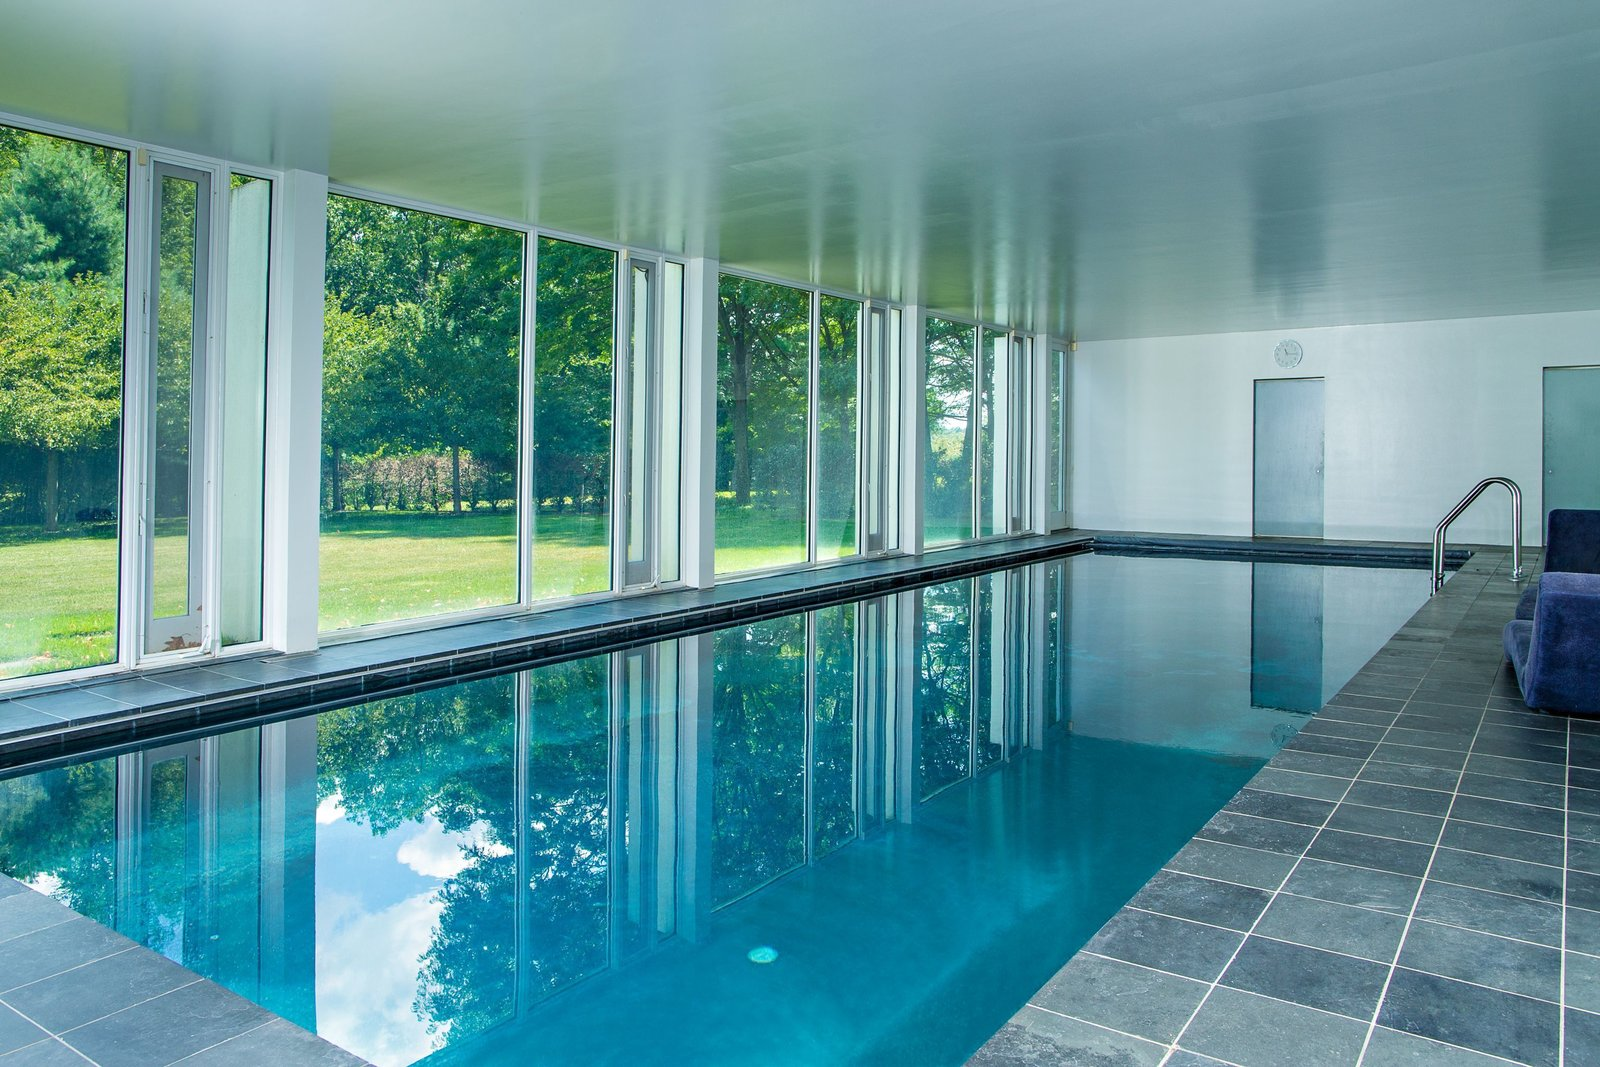 The substructure features an indoor pool, which looks out through glass walls on the side that looks out to the ground level.